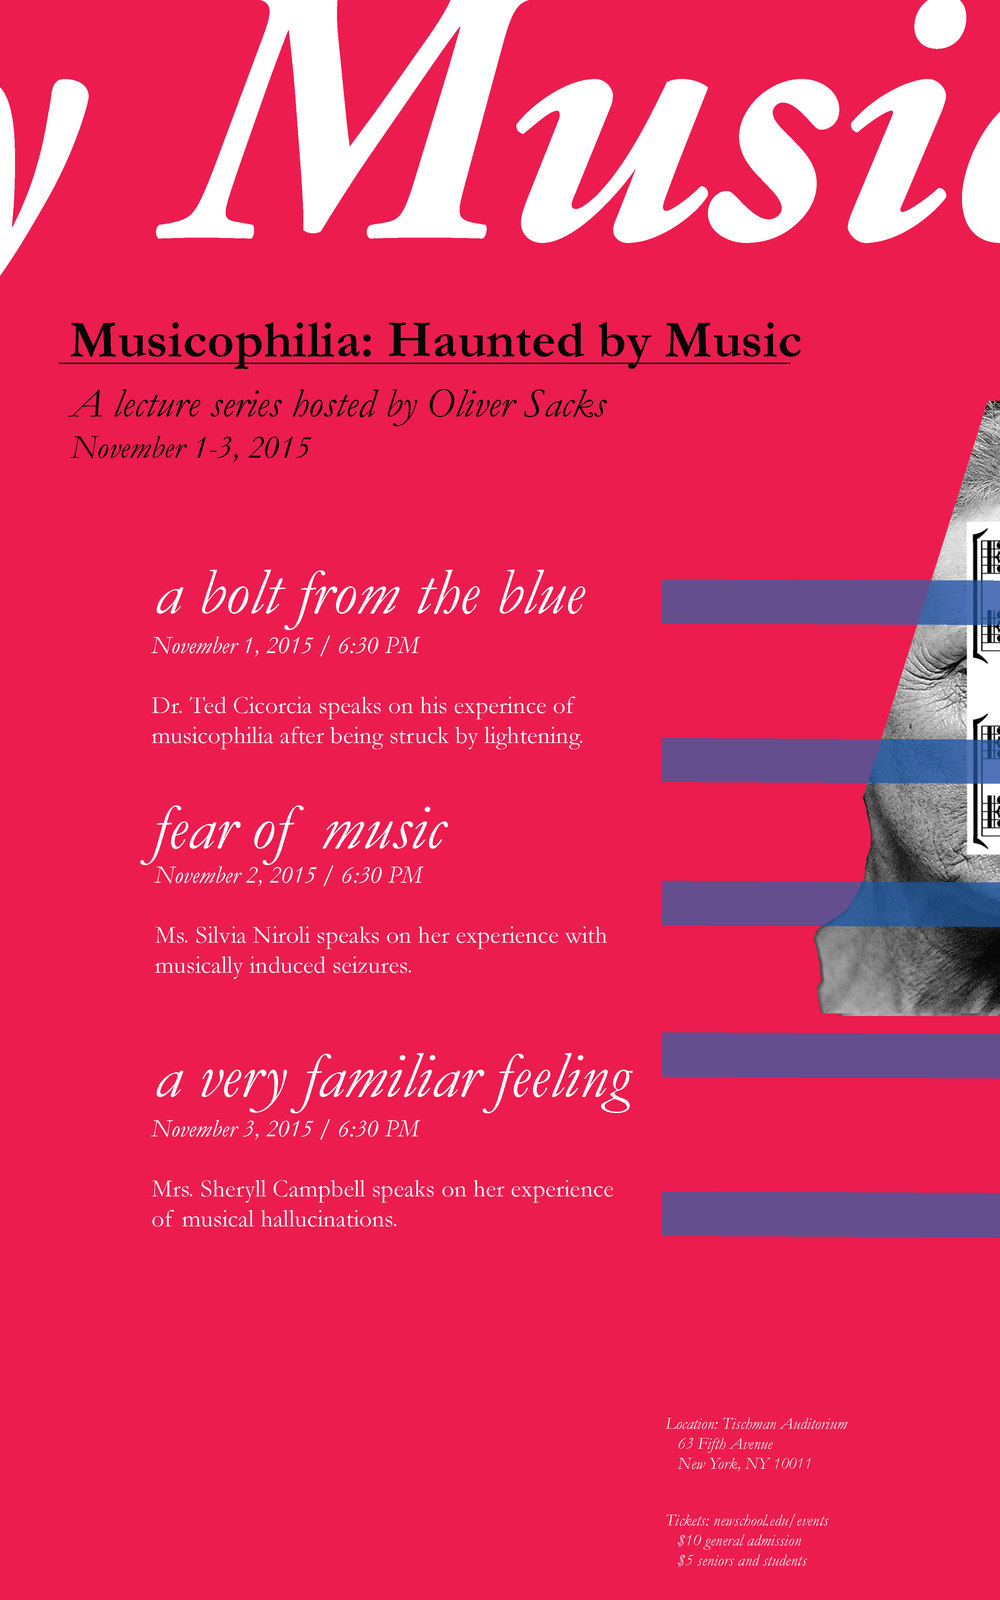 Balma_Posters_Musicophilia_Page_1.jpg